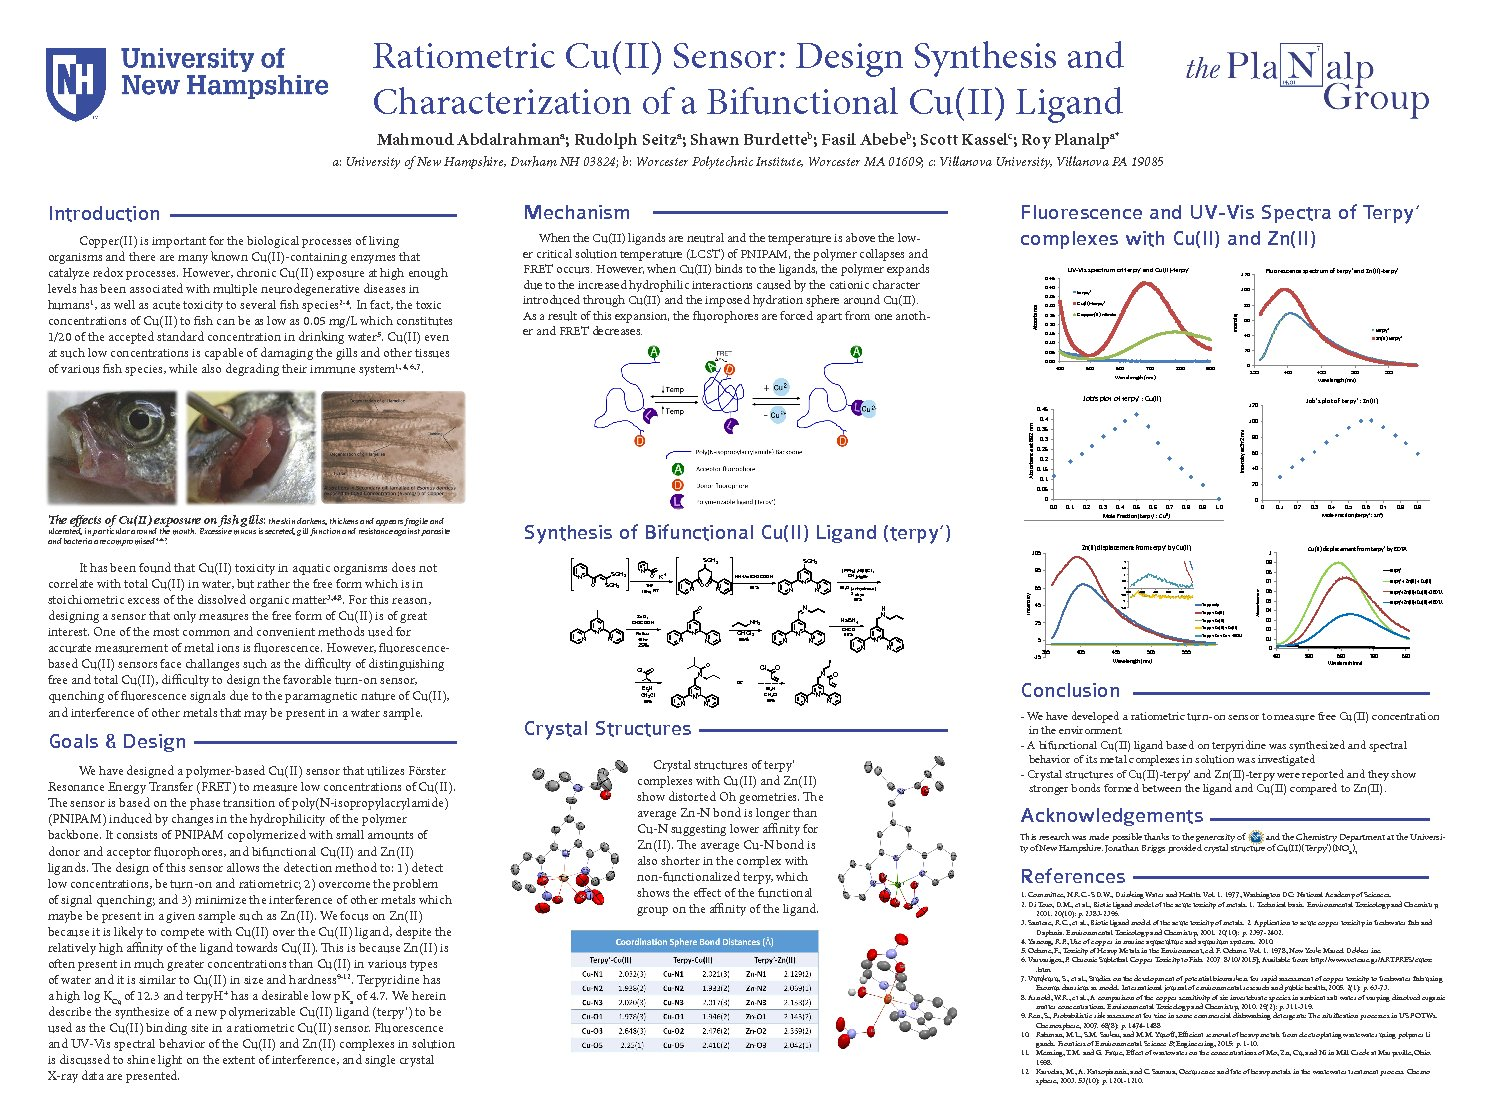 Ratiometric Cu(Ii) Sensor: Design Synthesis And Characterization Of A Bifunctional Cu(Ii) Ligand by ma326